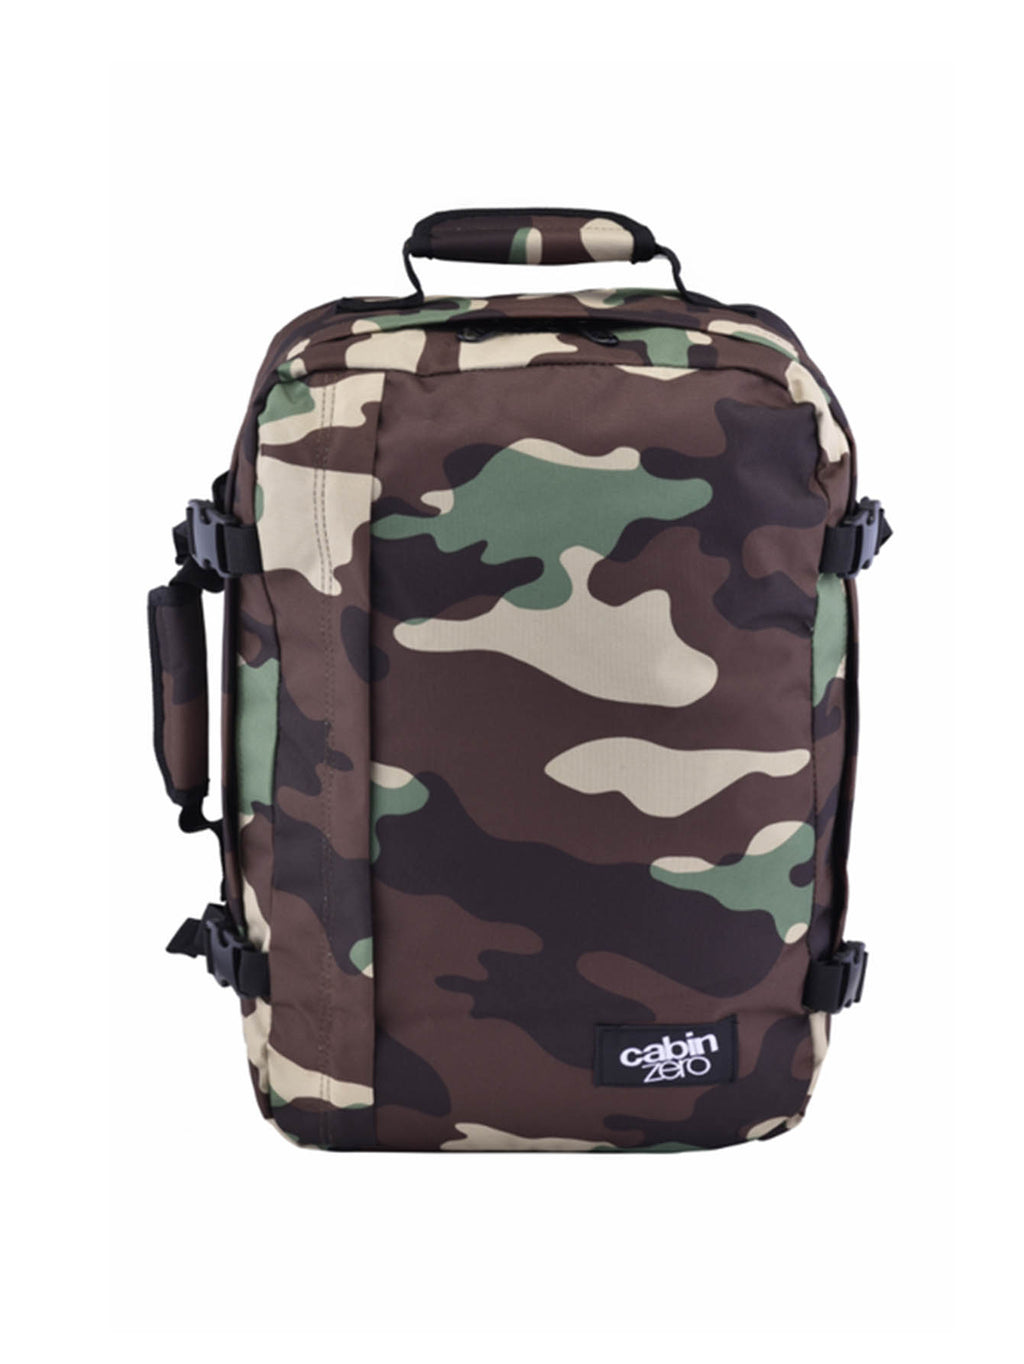 Cabinzero Classic 36L Ultra-Light Cabin Bag in Jungle Camo Color